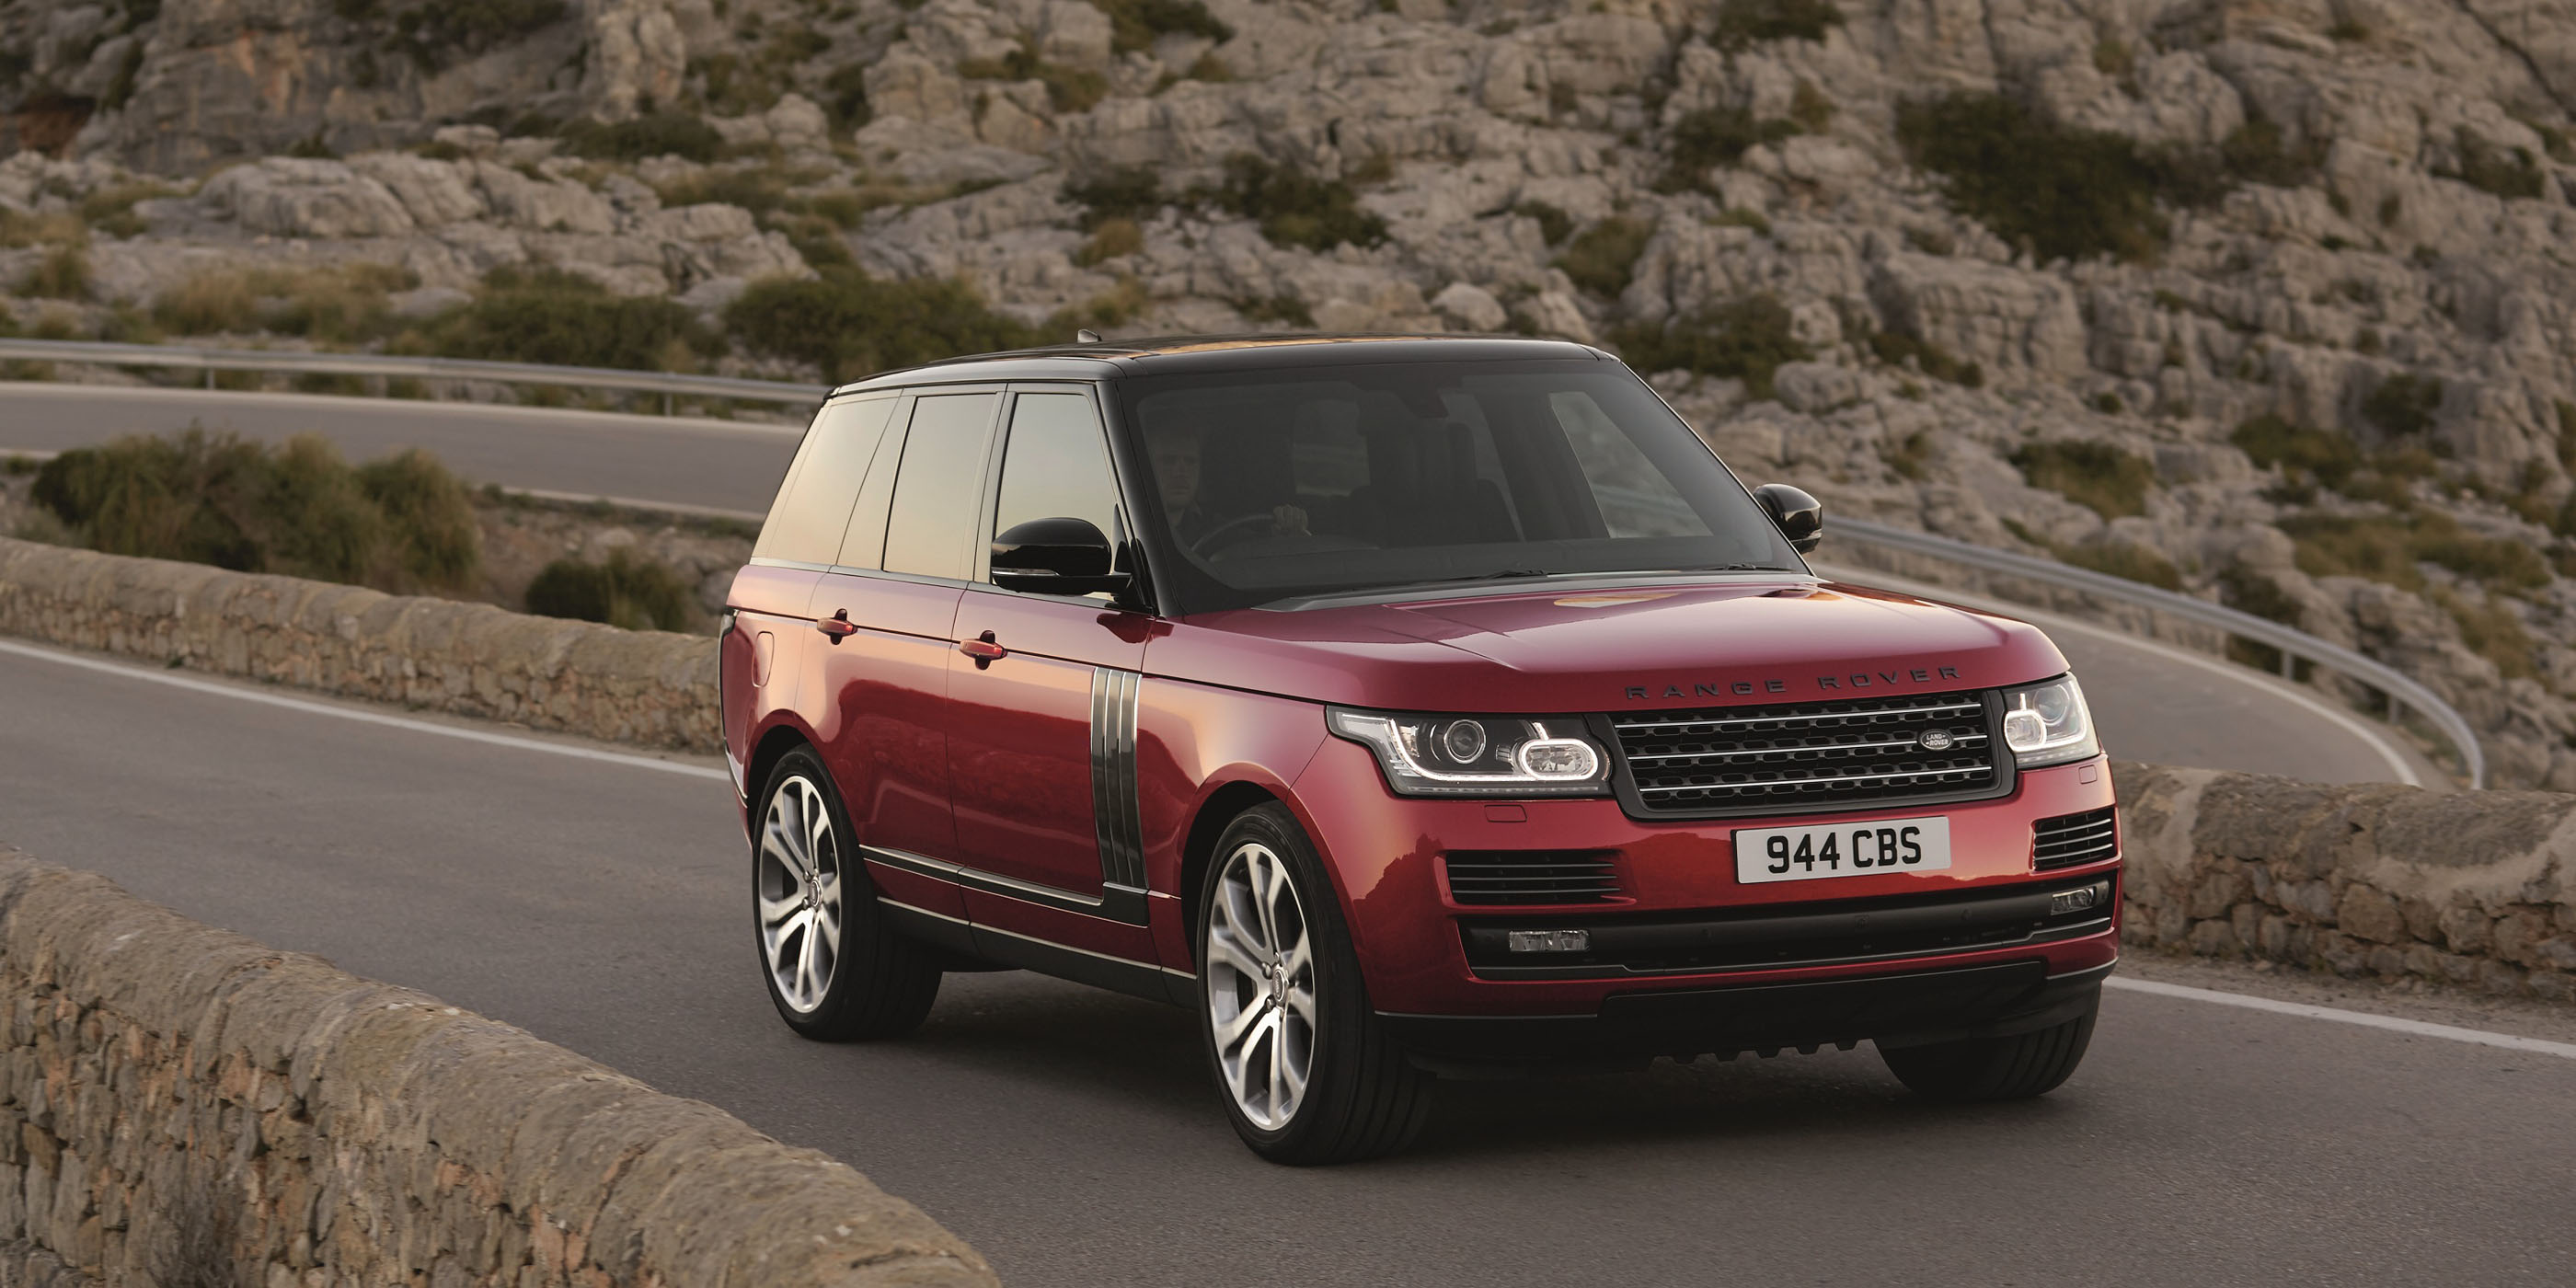 Land Rover Range Rover The Car Connection s Best Luxury Vehicle to